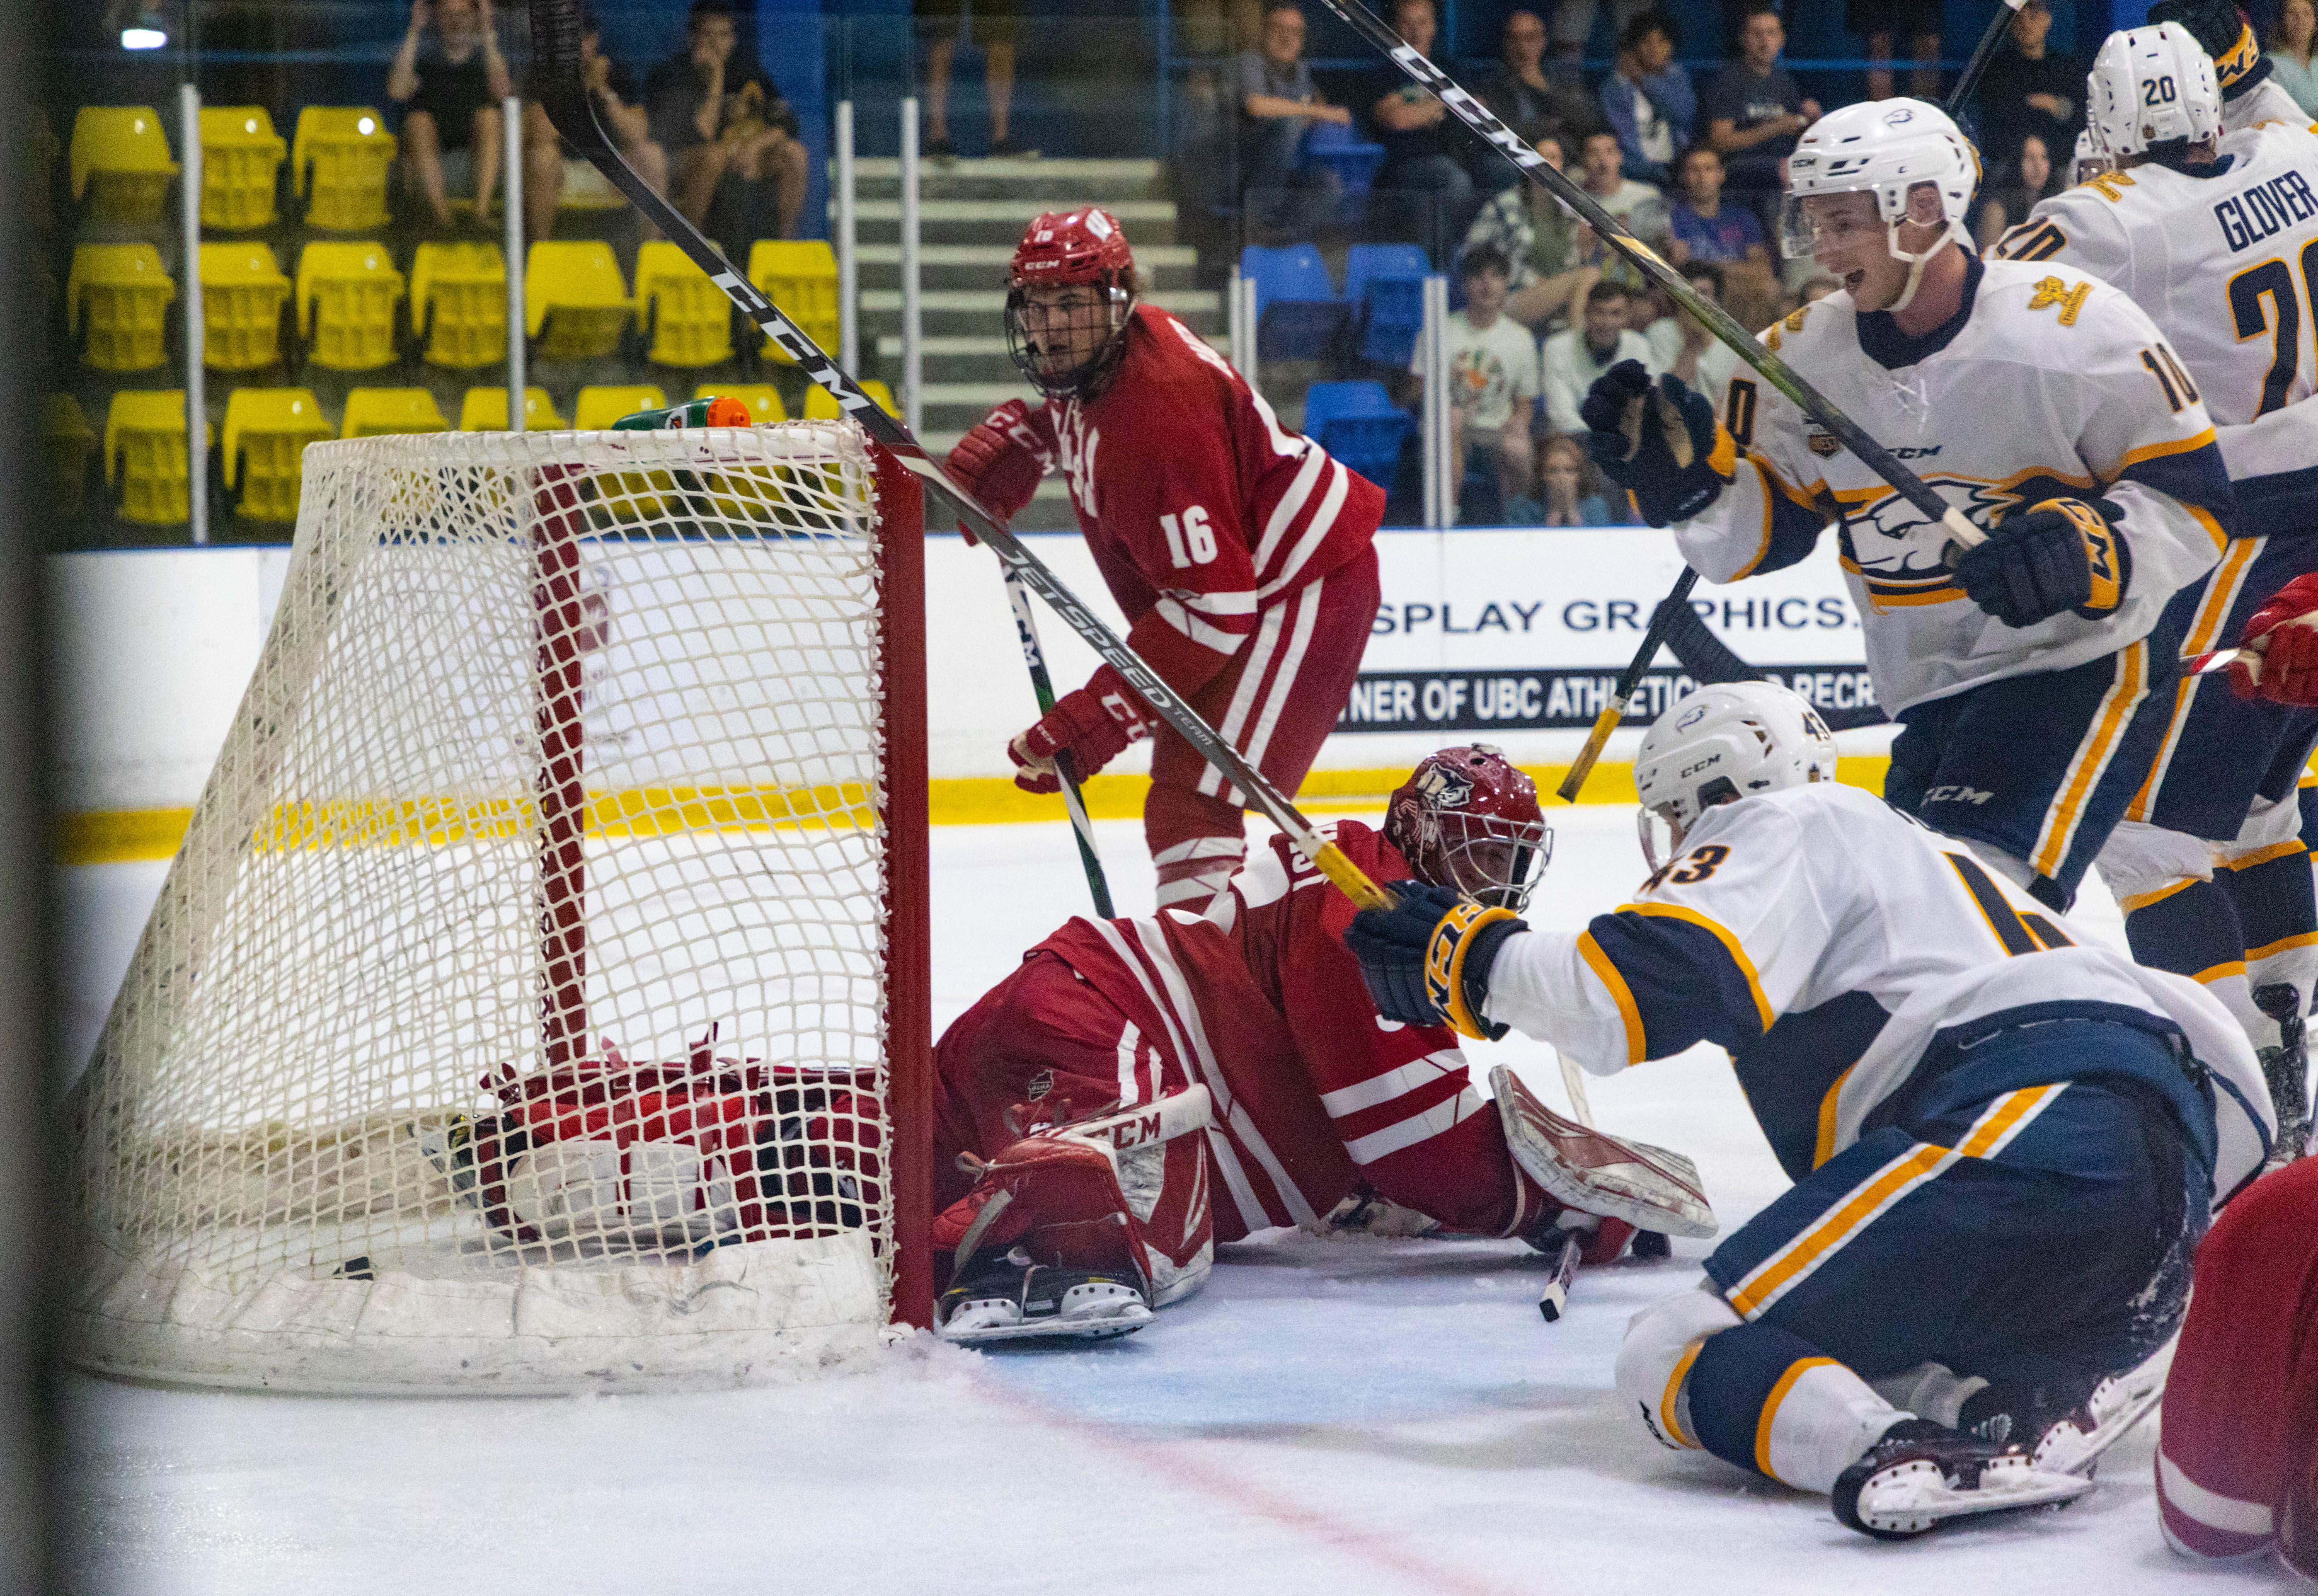 The Thunderbirds celebrate getting one past the Badgers netminder in the third period